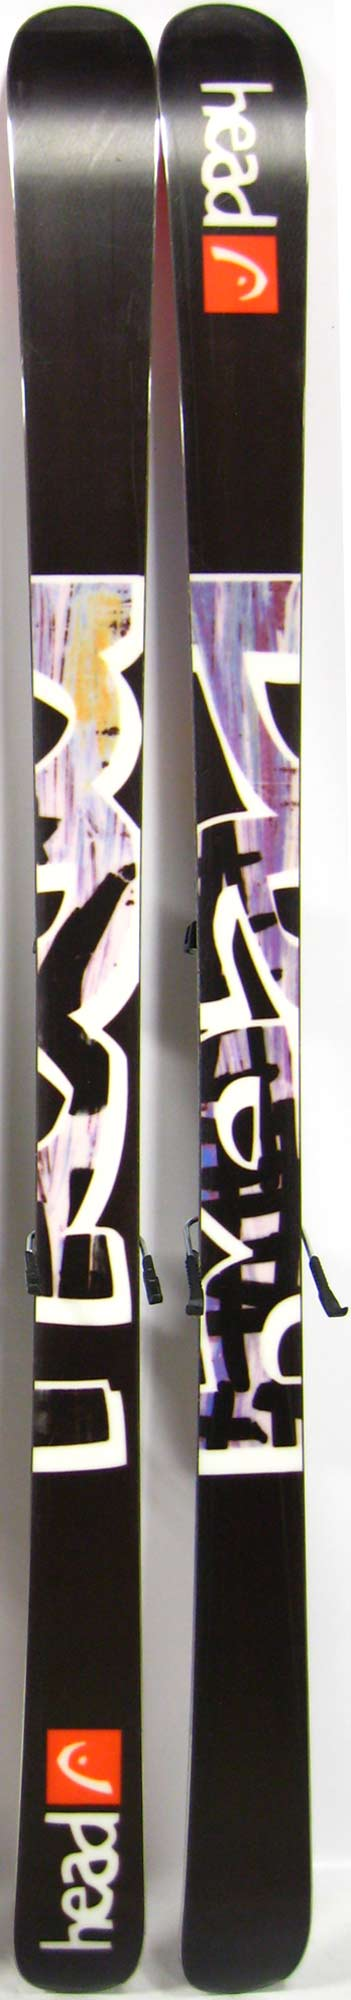 Bases of 2013 Head Oblivion Skis For Sale